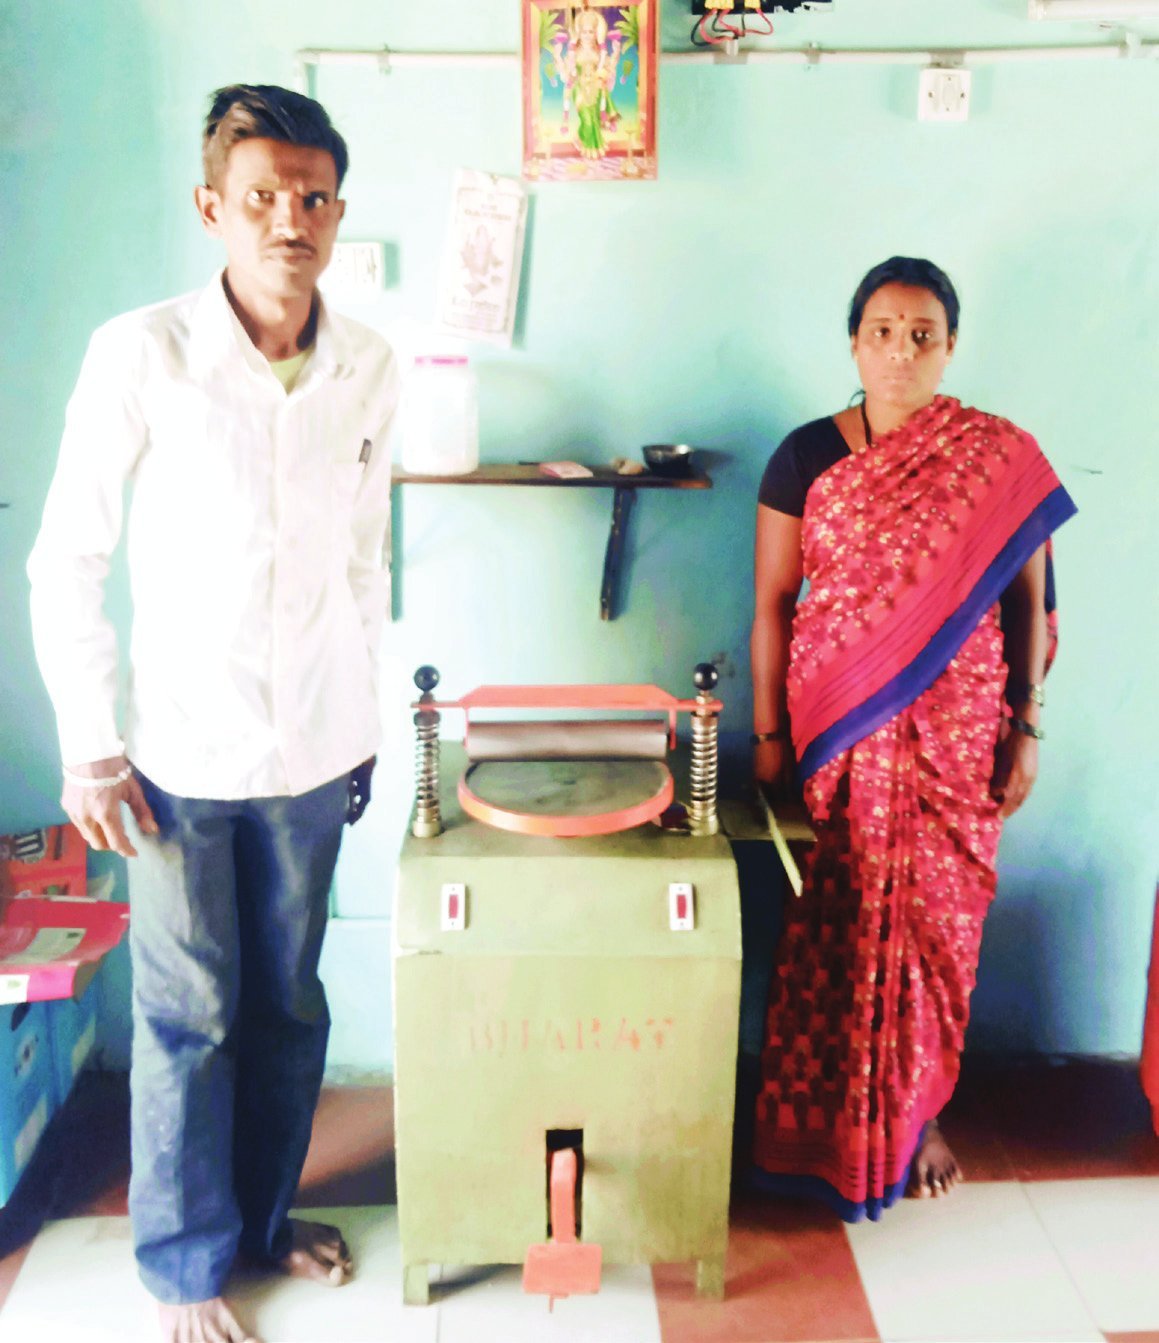 Duriyappanavar is specially abled has installed a Solar powered Roti Rolling Machine